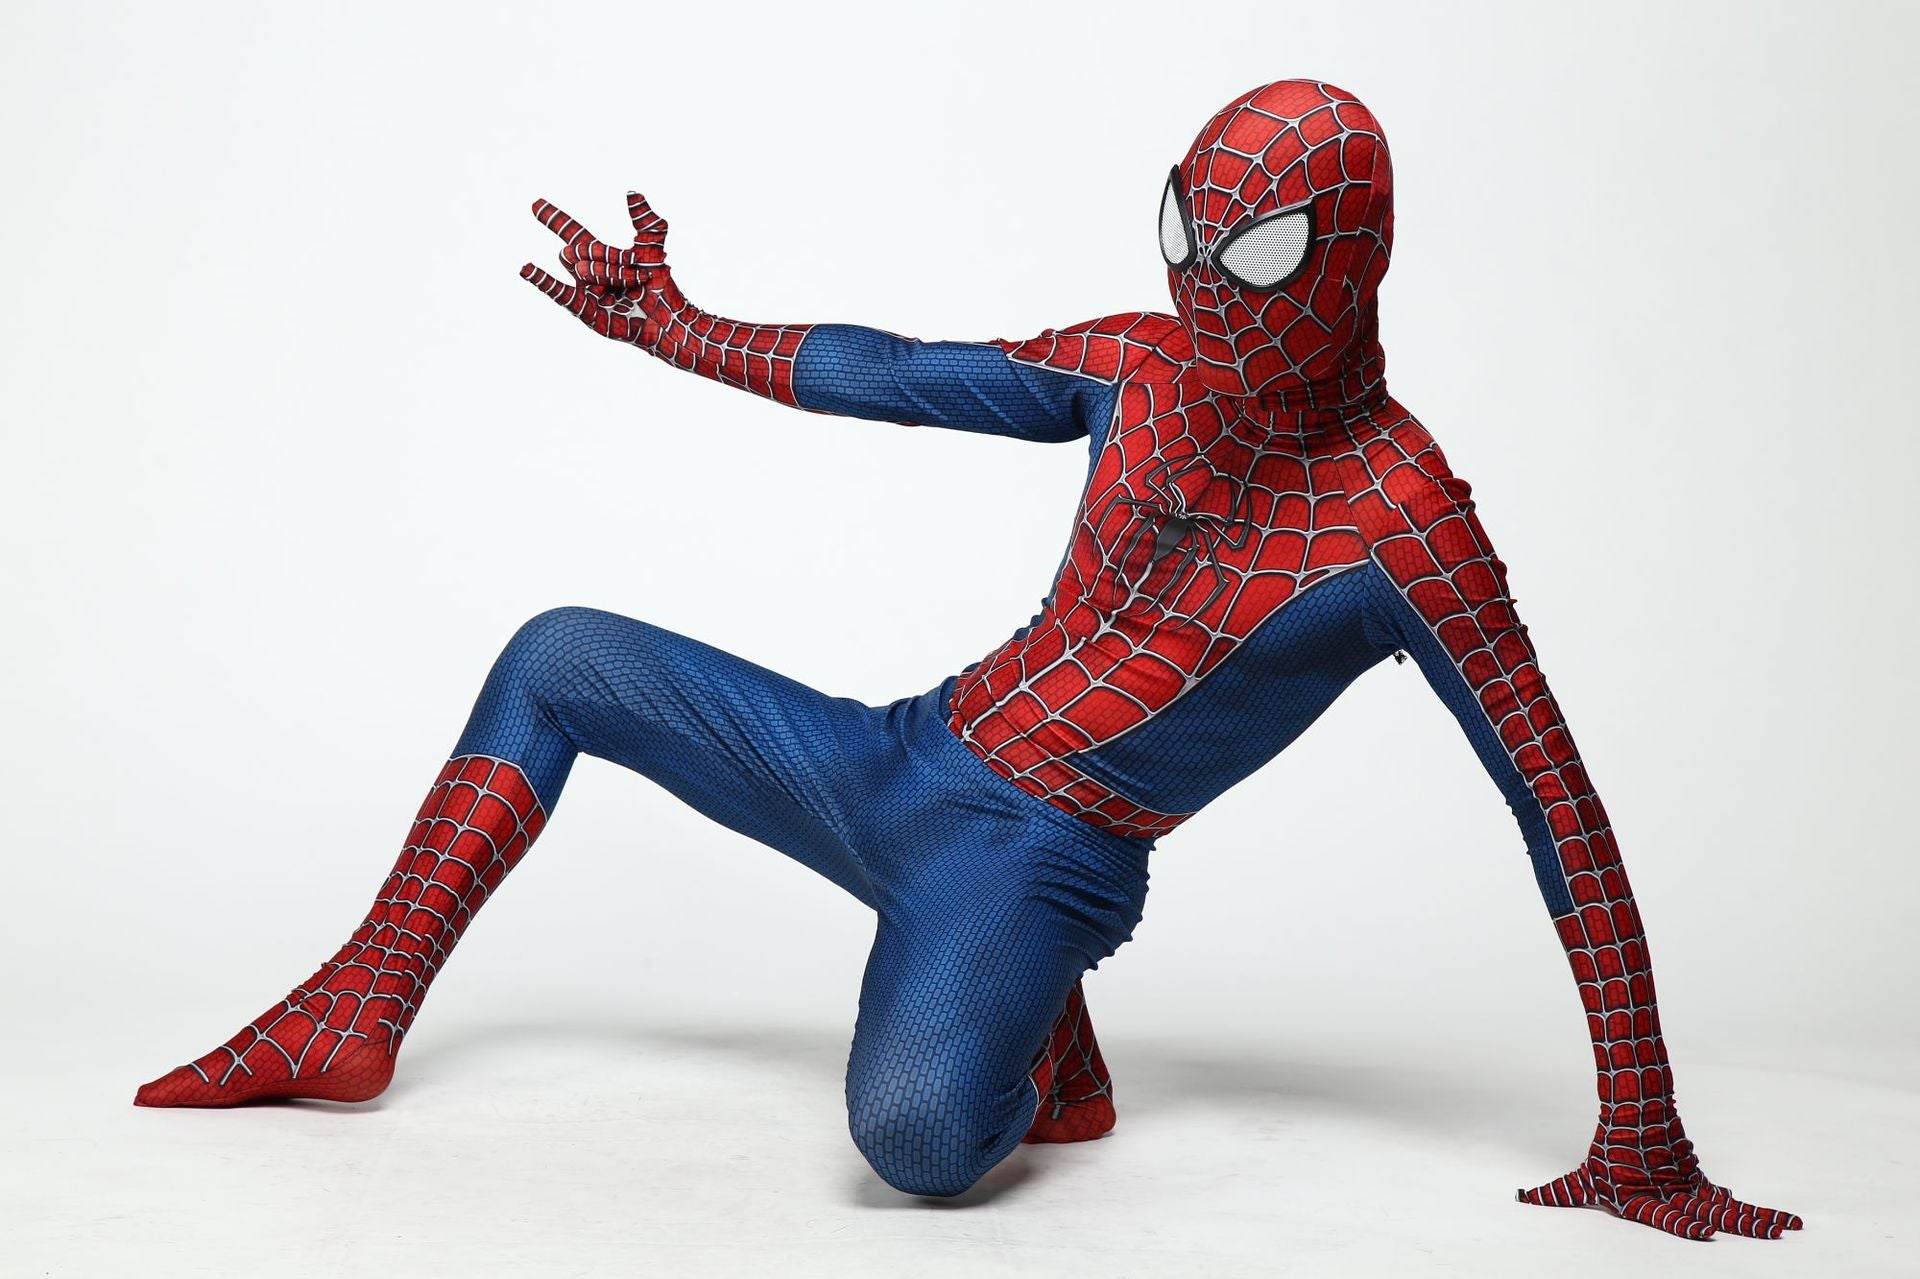 High Quality Spider Man Spiderman Costume, [variant_title], [option1], [option2], [option3] - anythinganyware